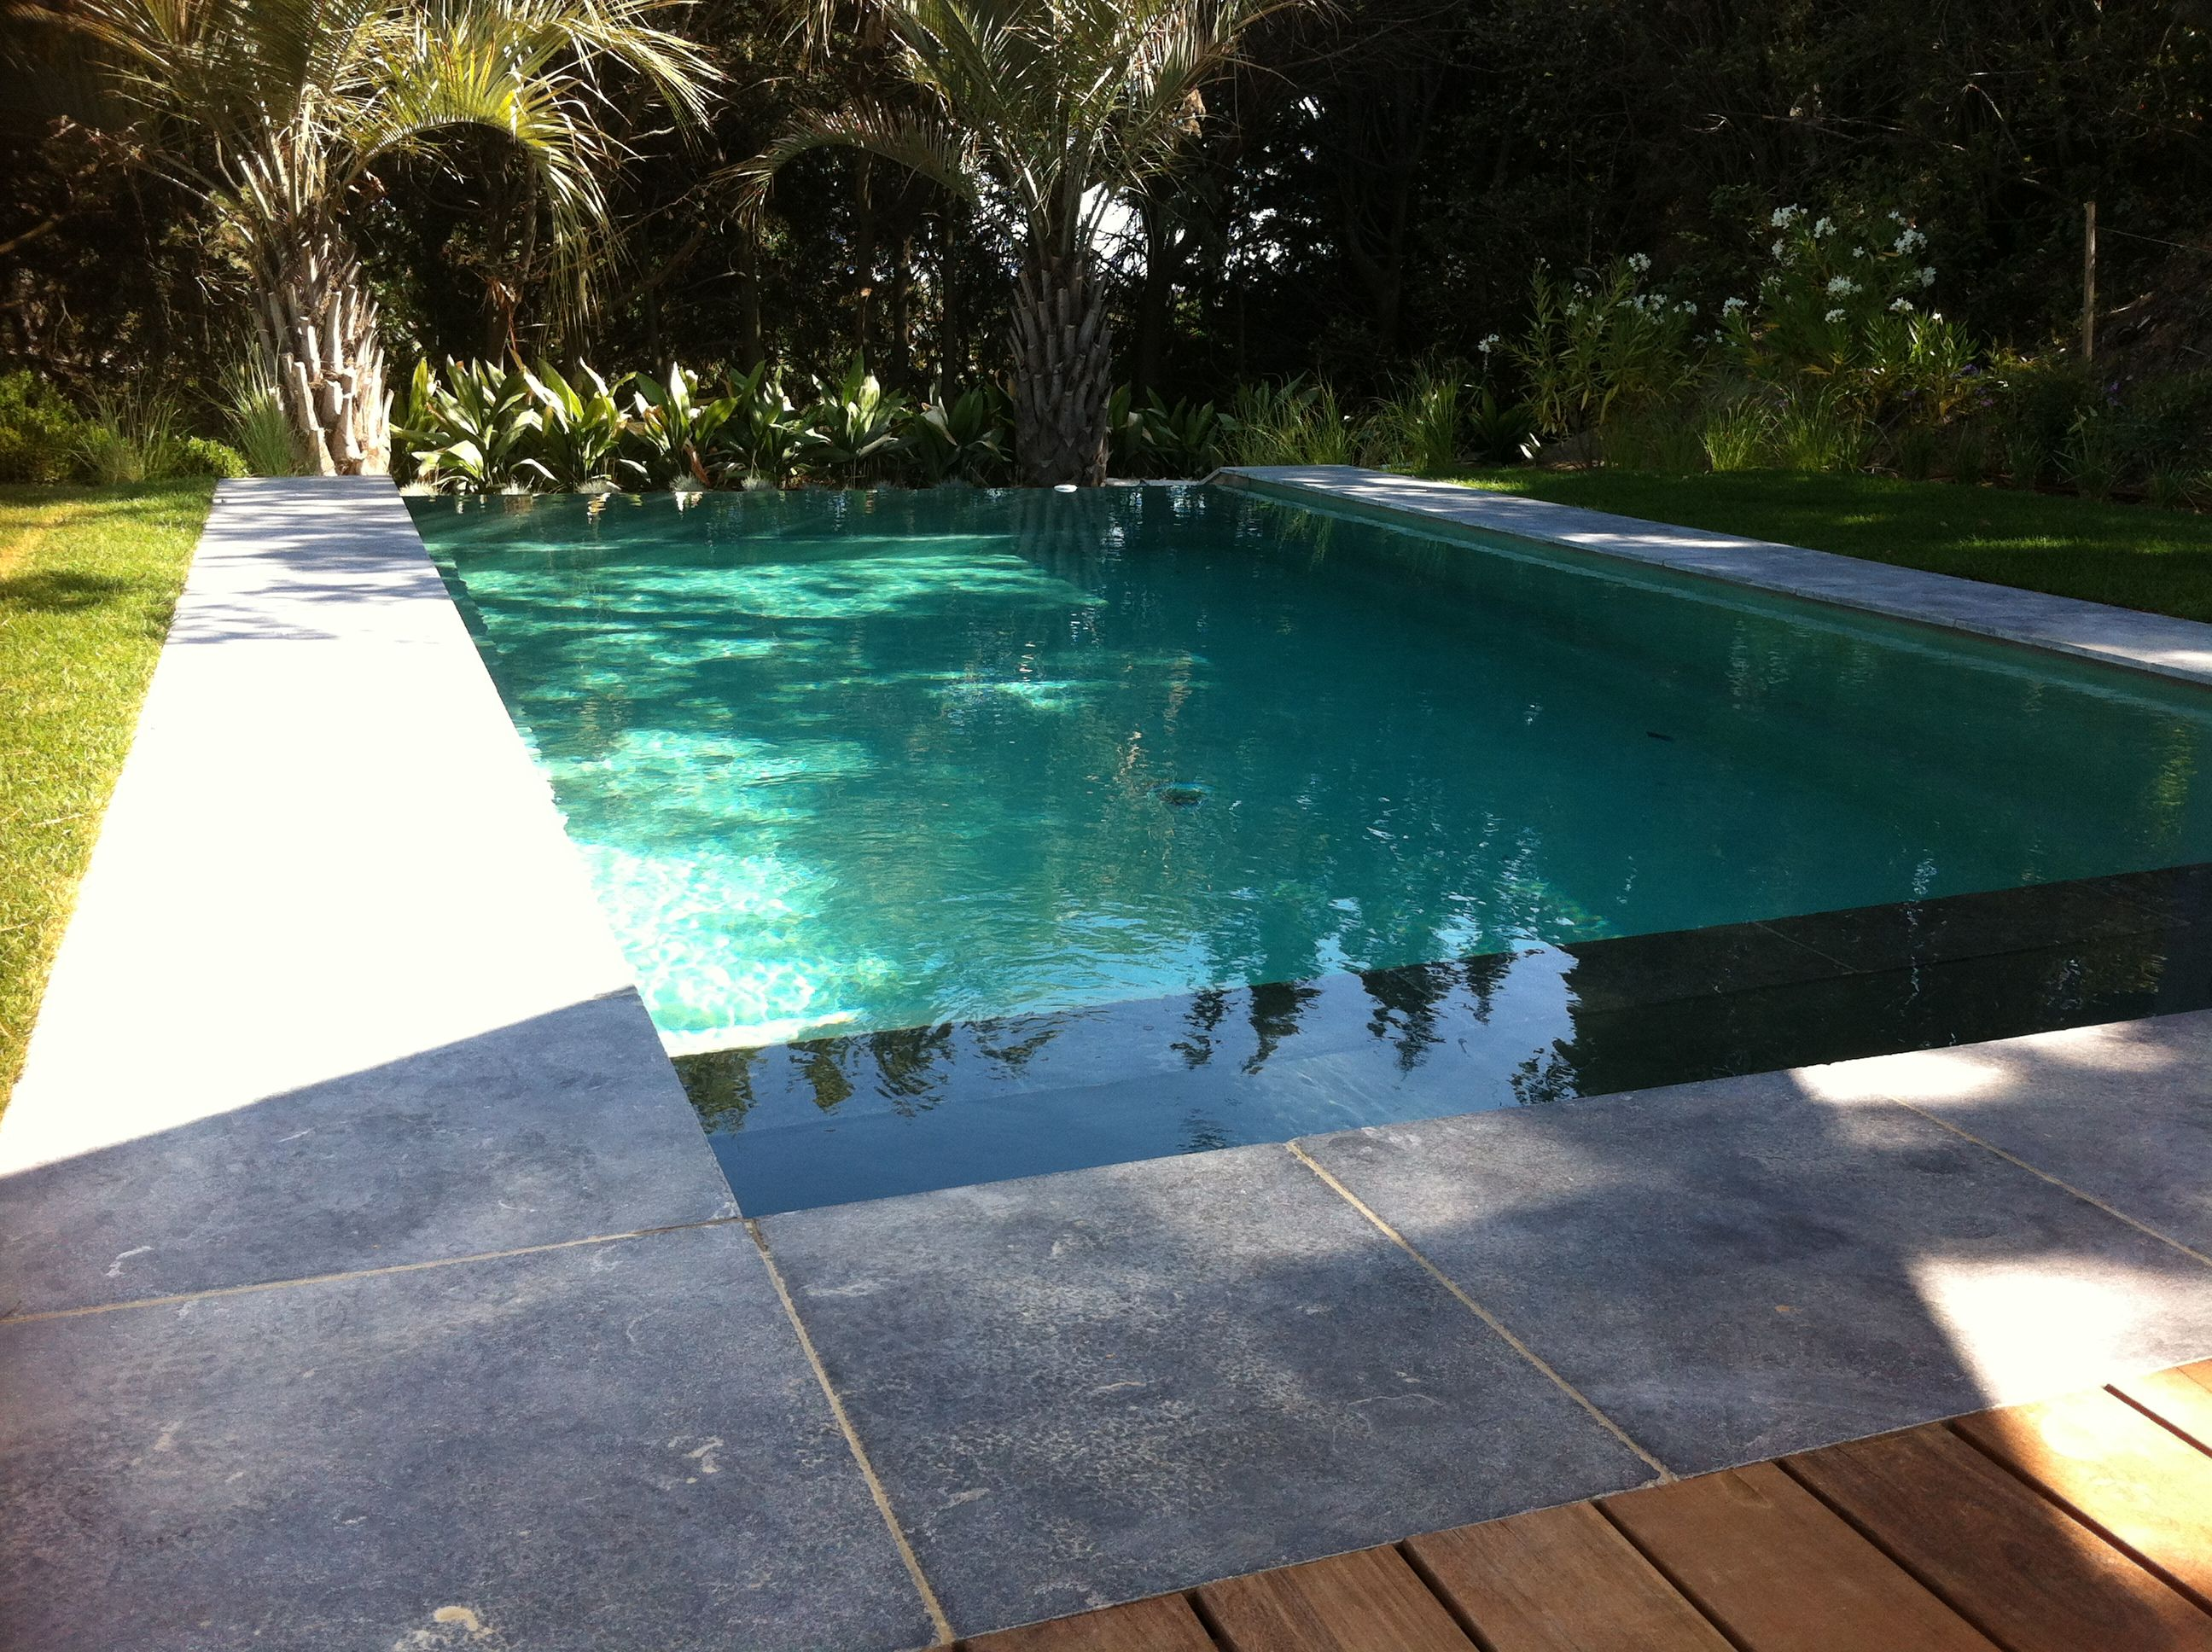 Les bassins du sud piscine contemporaine pools decks for Piscine researcher